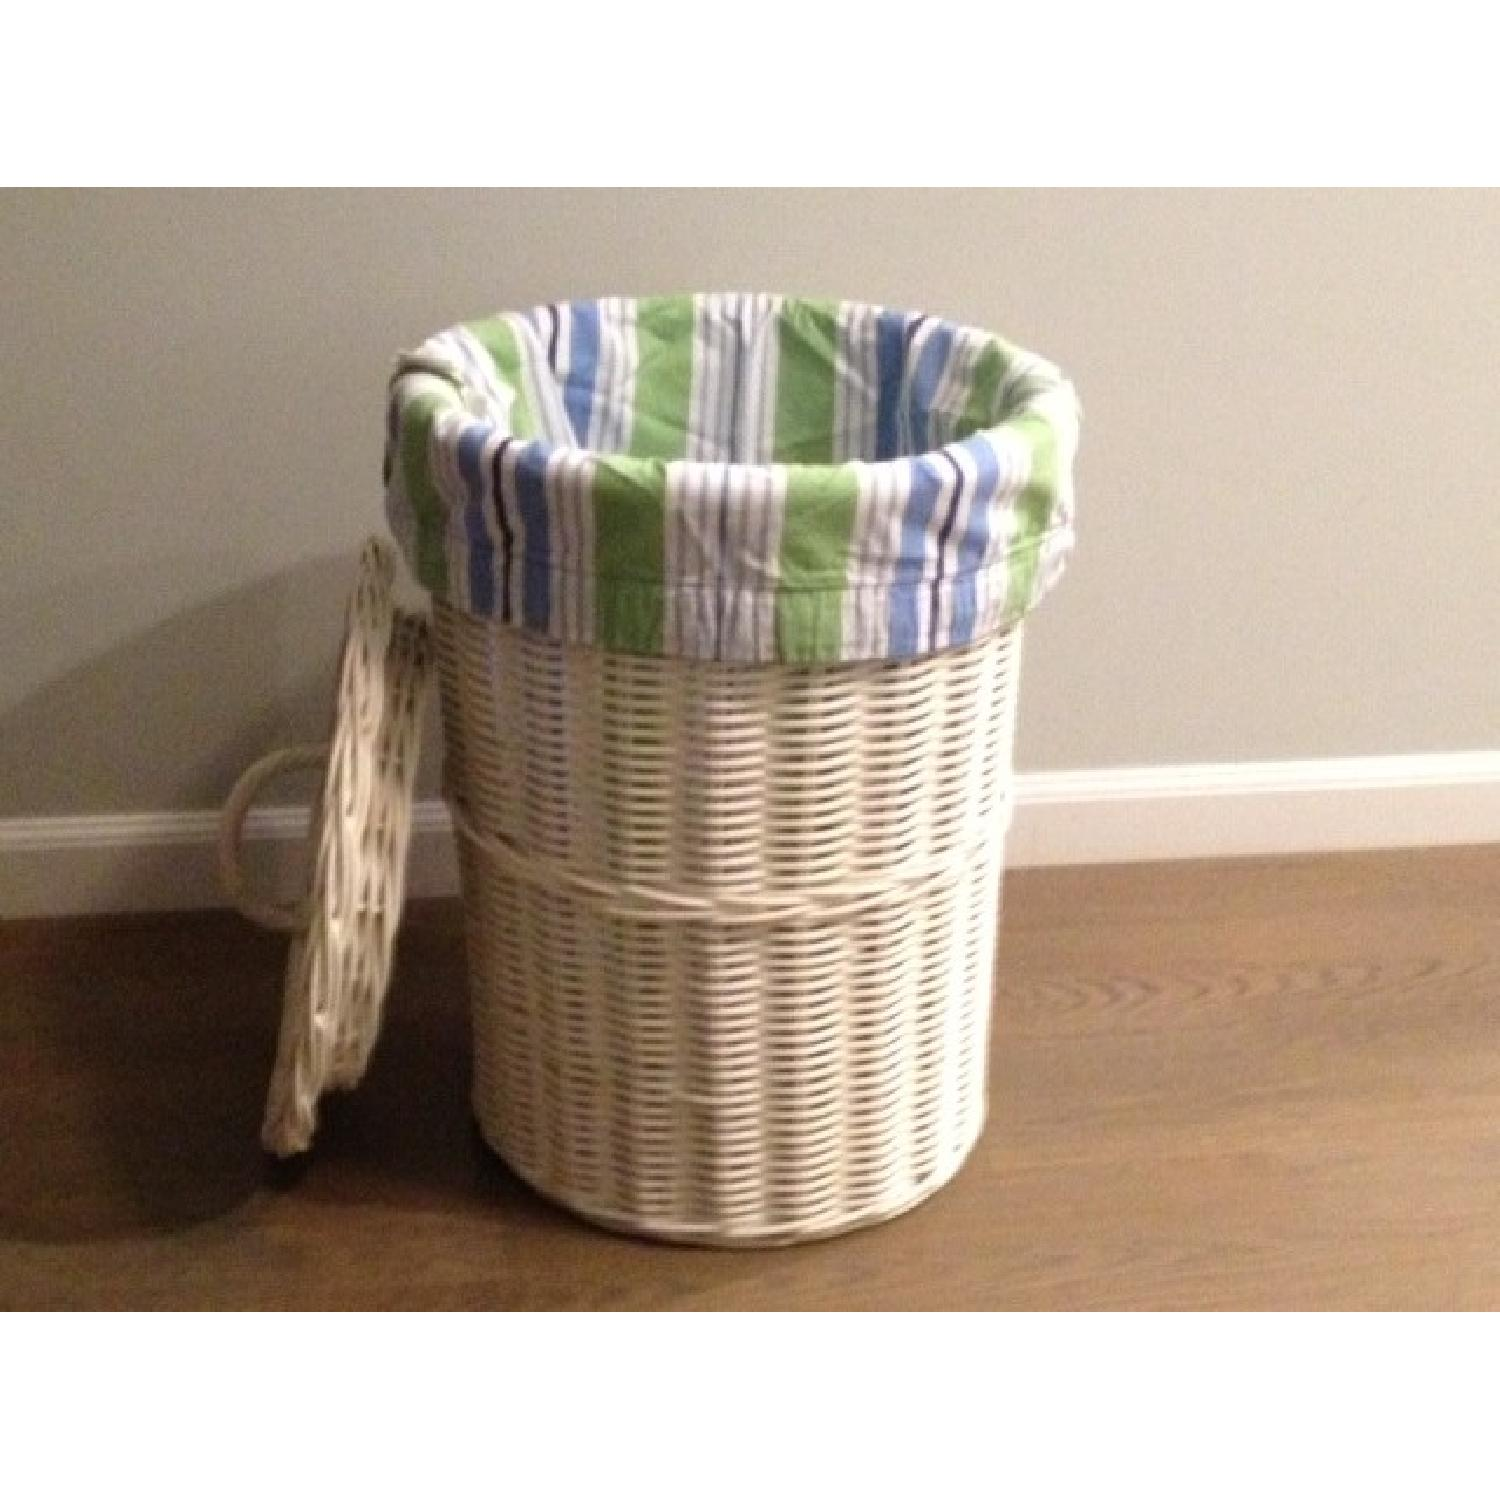 Pottery Barn Sabrina Hamper with Inserts - image-2